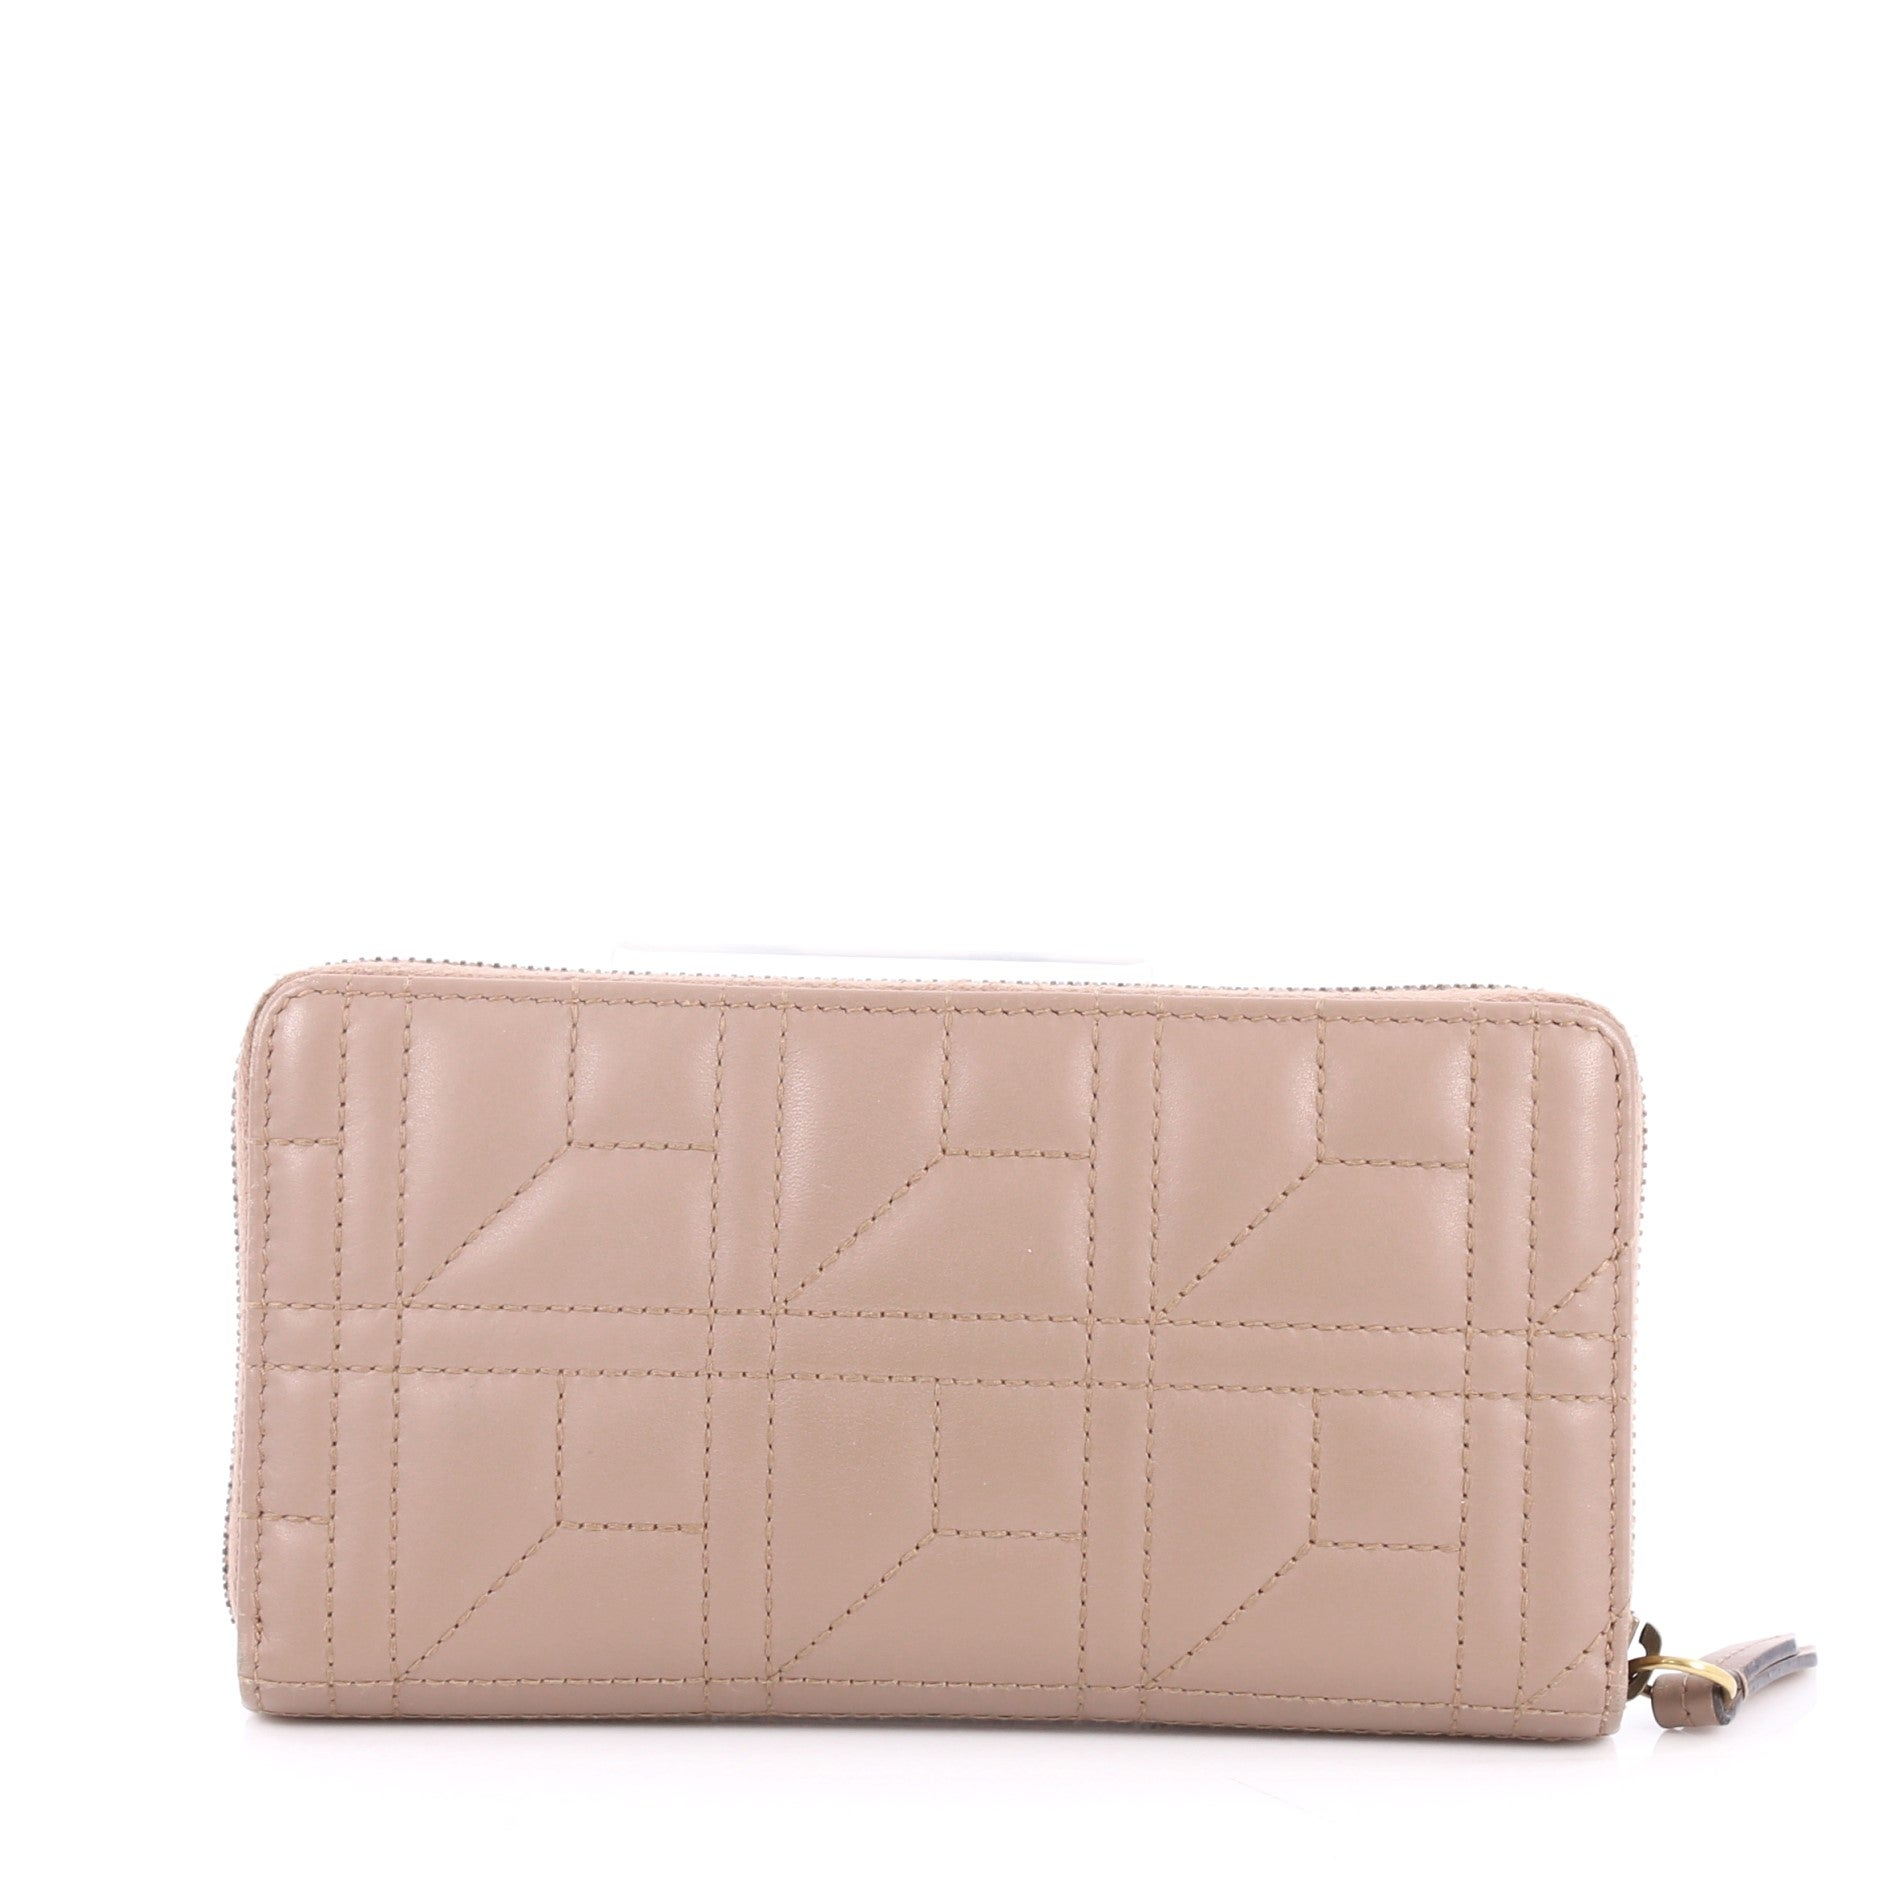 f3ea64e8efb Gucci Pearly GG Marmont Zip Around Wallet Matelasse Leather at 1stdibs